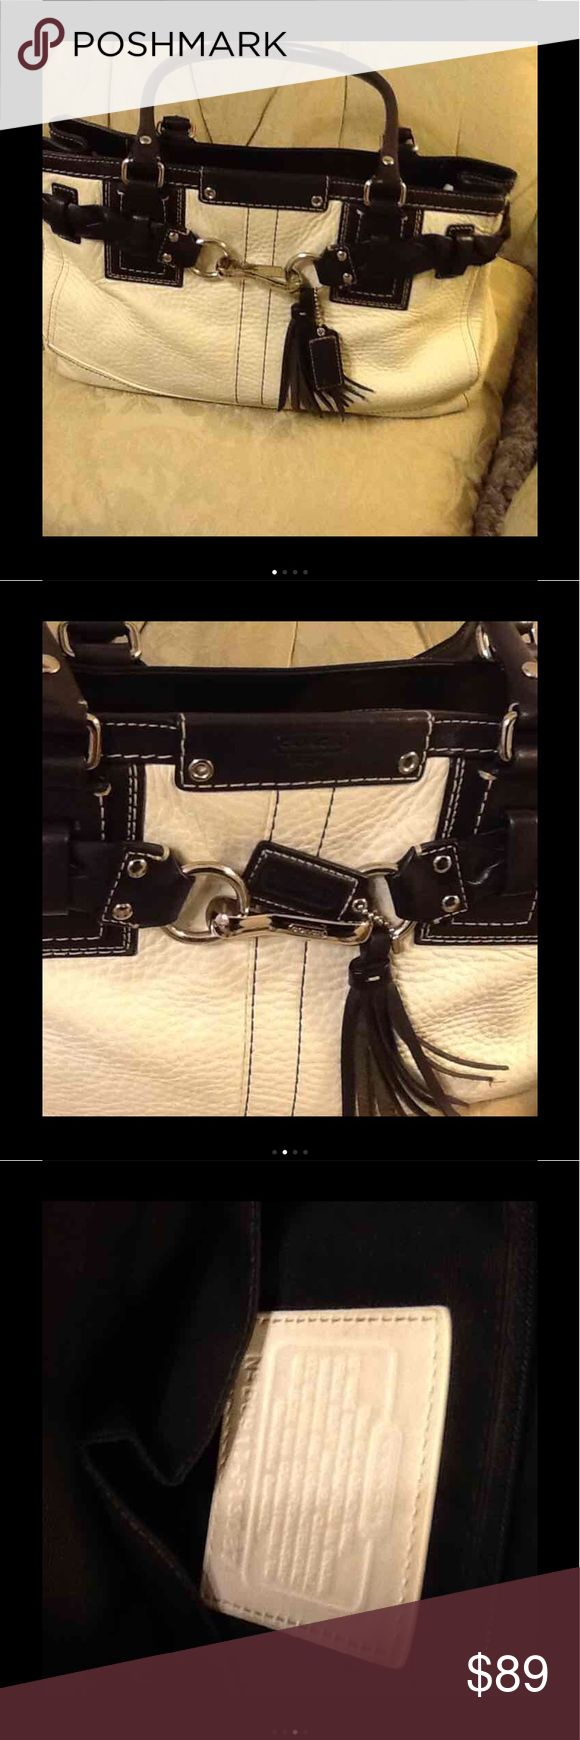 "🖤Pebbled leather Coach bag🖤 Gorgeous Coach shoulder bag in a cream pebbled leather (almost white) with black strong leather handle and trim.Silver detail and tassels. All black lining inside bag which is in excellent condition.size 8.25"" high X 14"" across X 4"" deep. Great price original $289 their is a microscopic faded ink mark in the back of the bag.(very difficult to c)No shoulder strap Coach Bags Satchels"